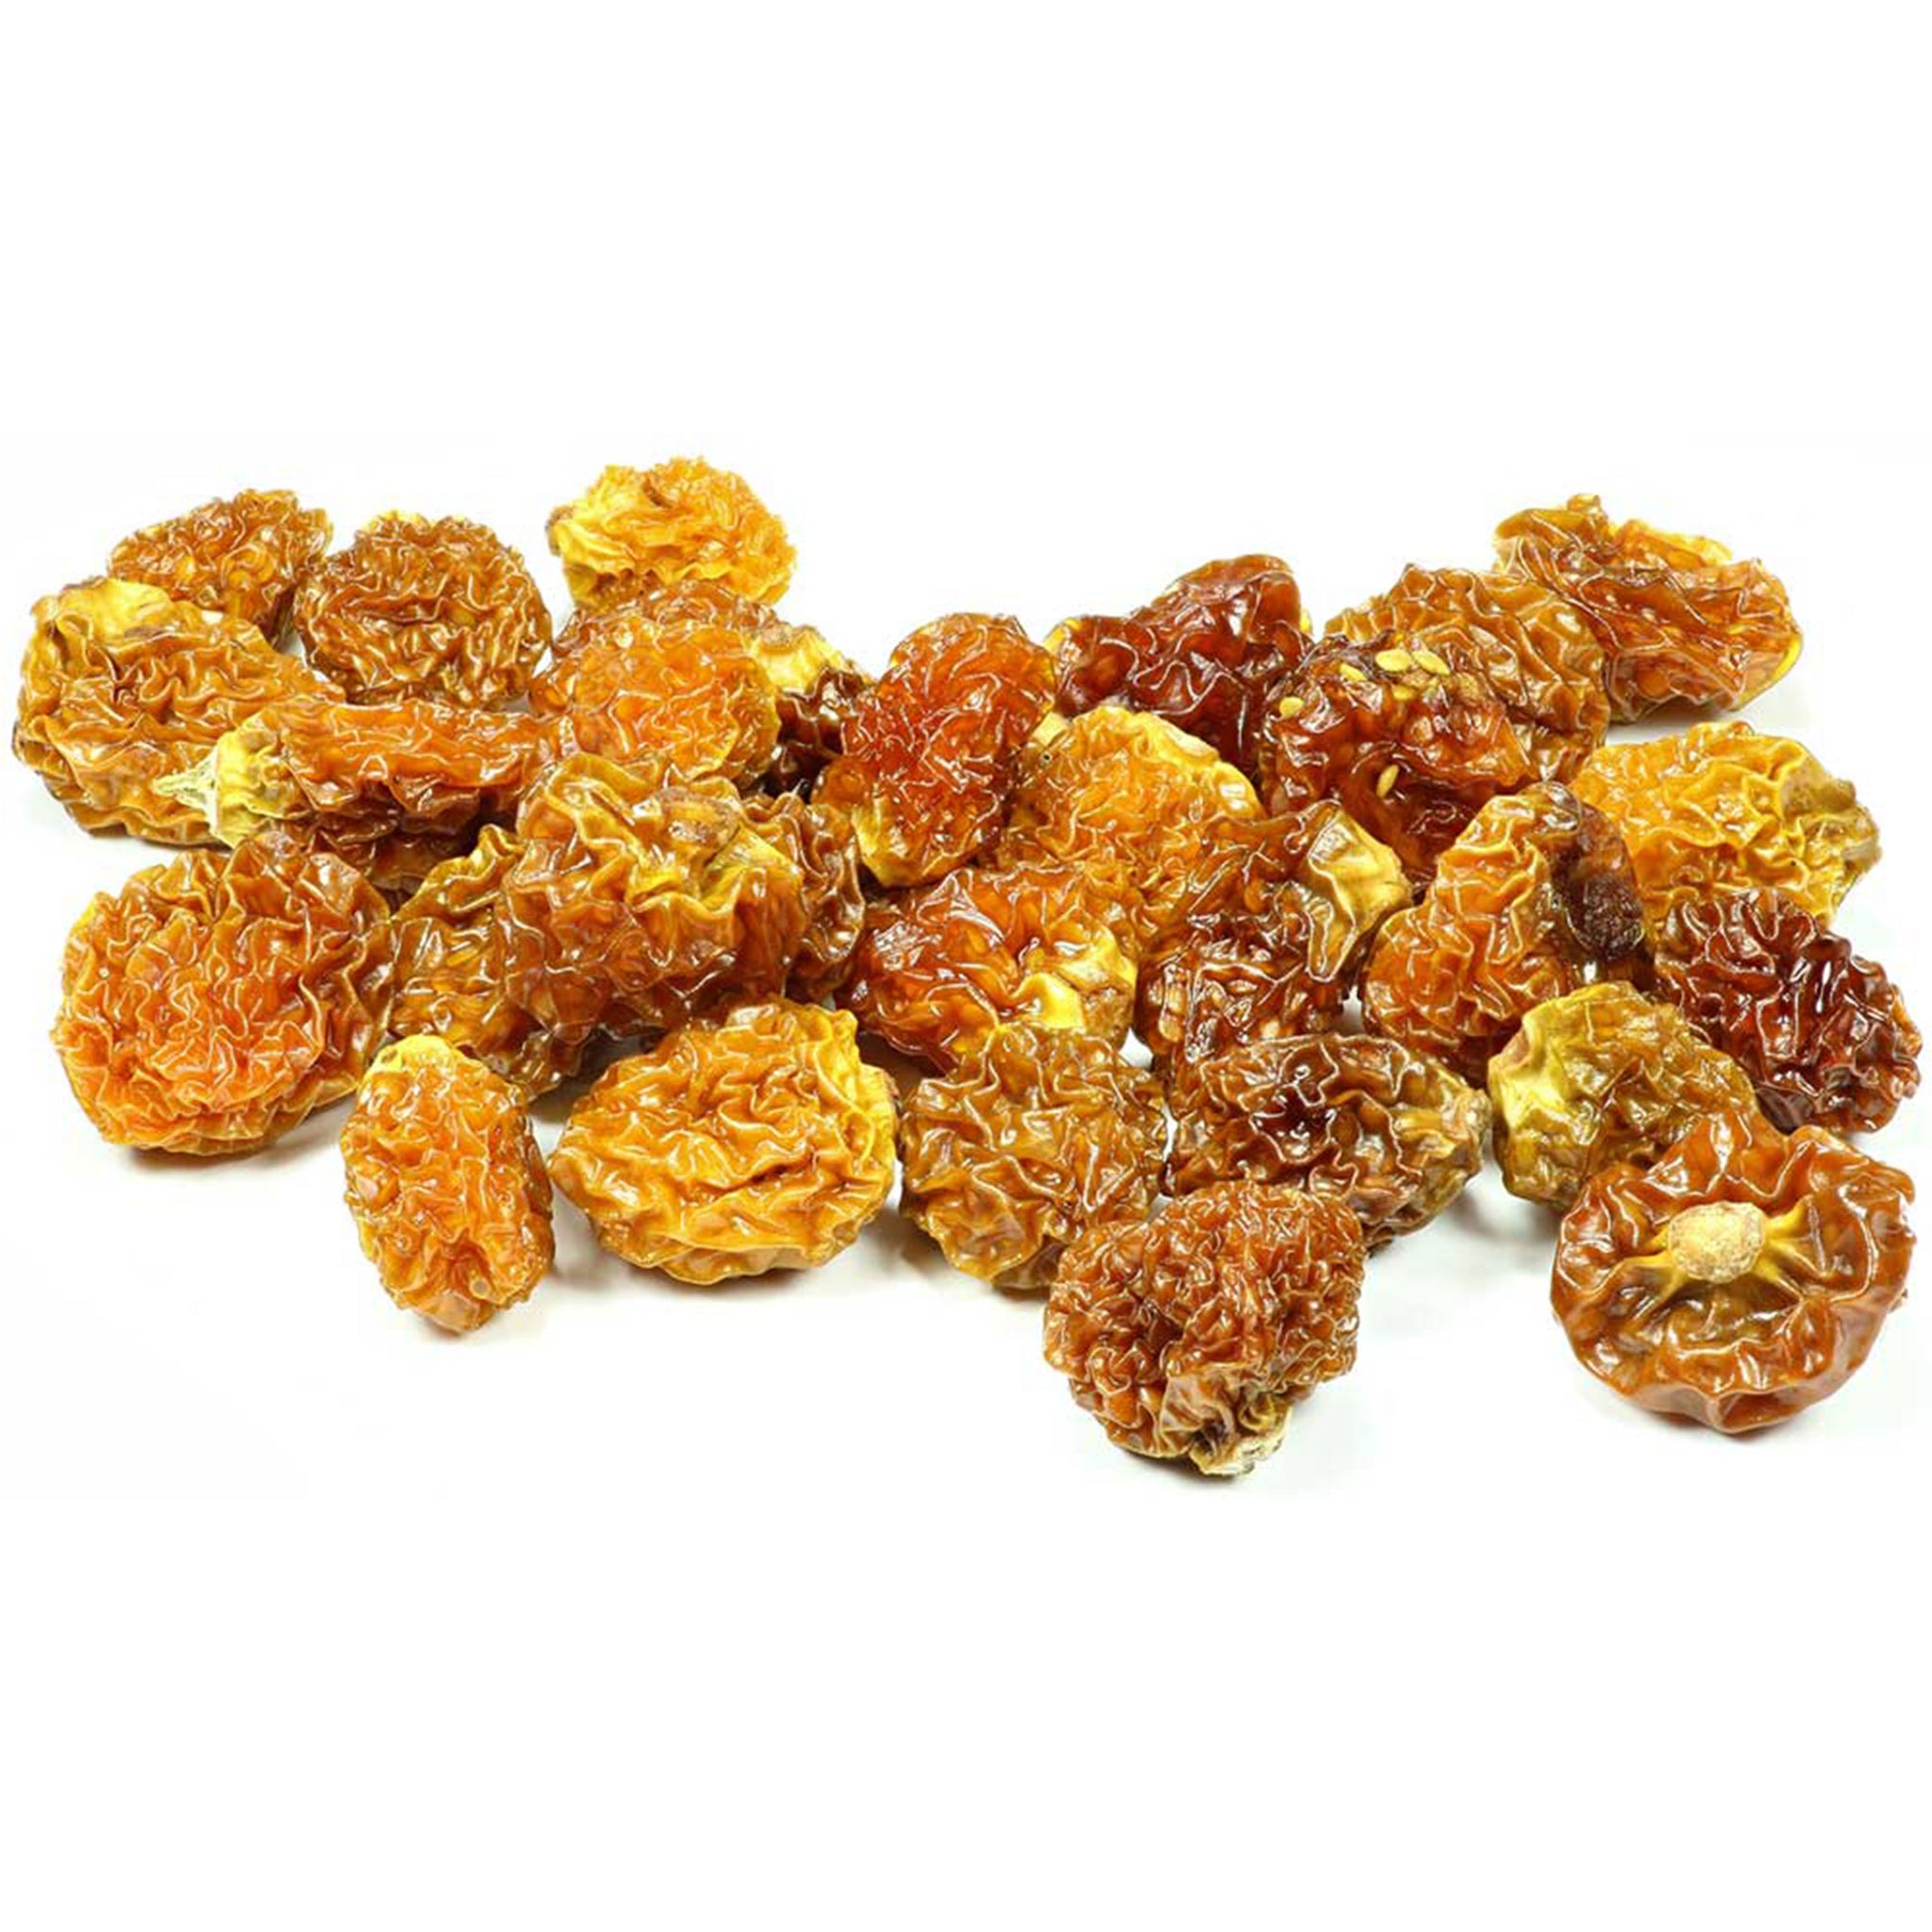 Organic Golden Berries - Foods Alive